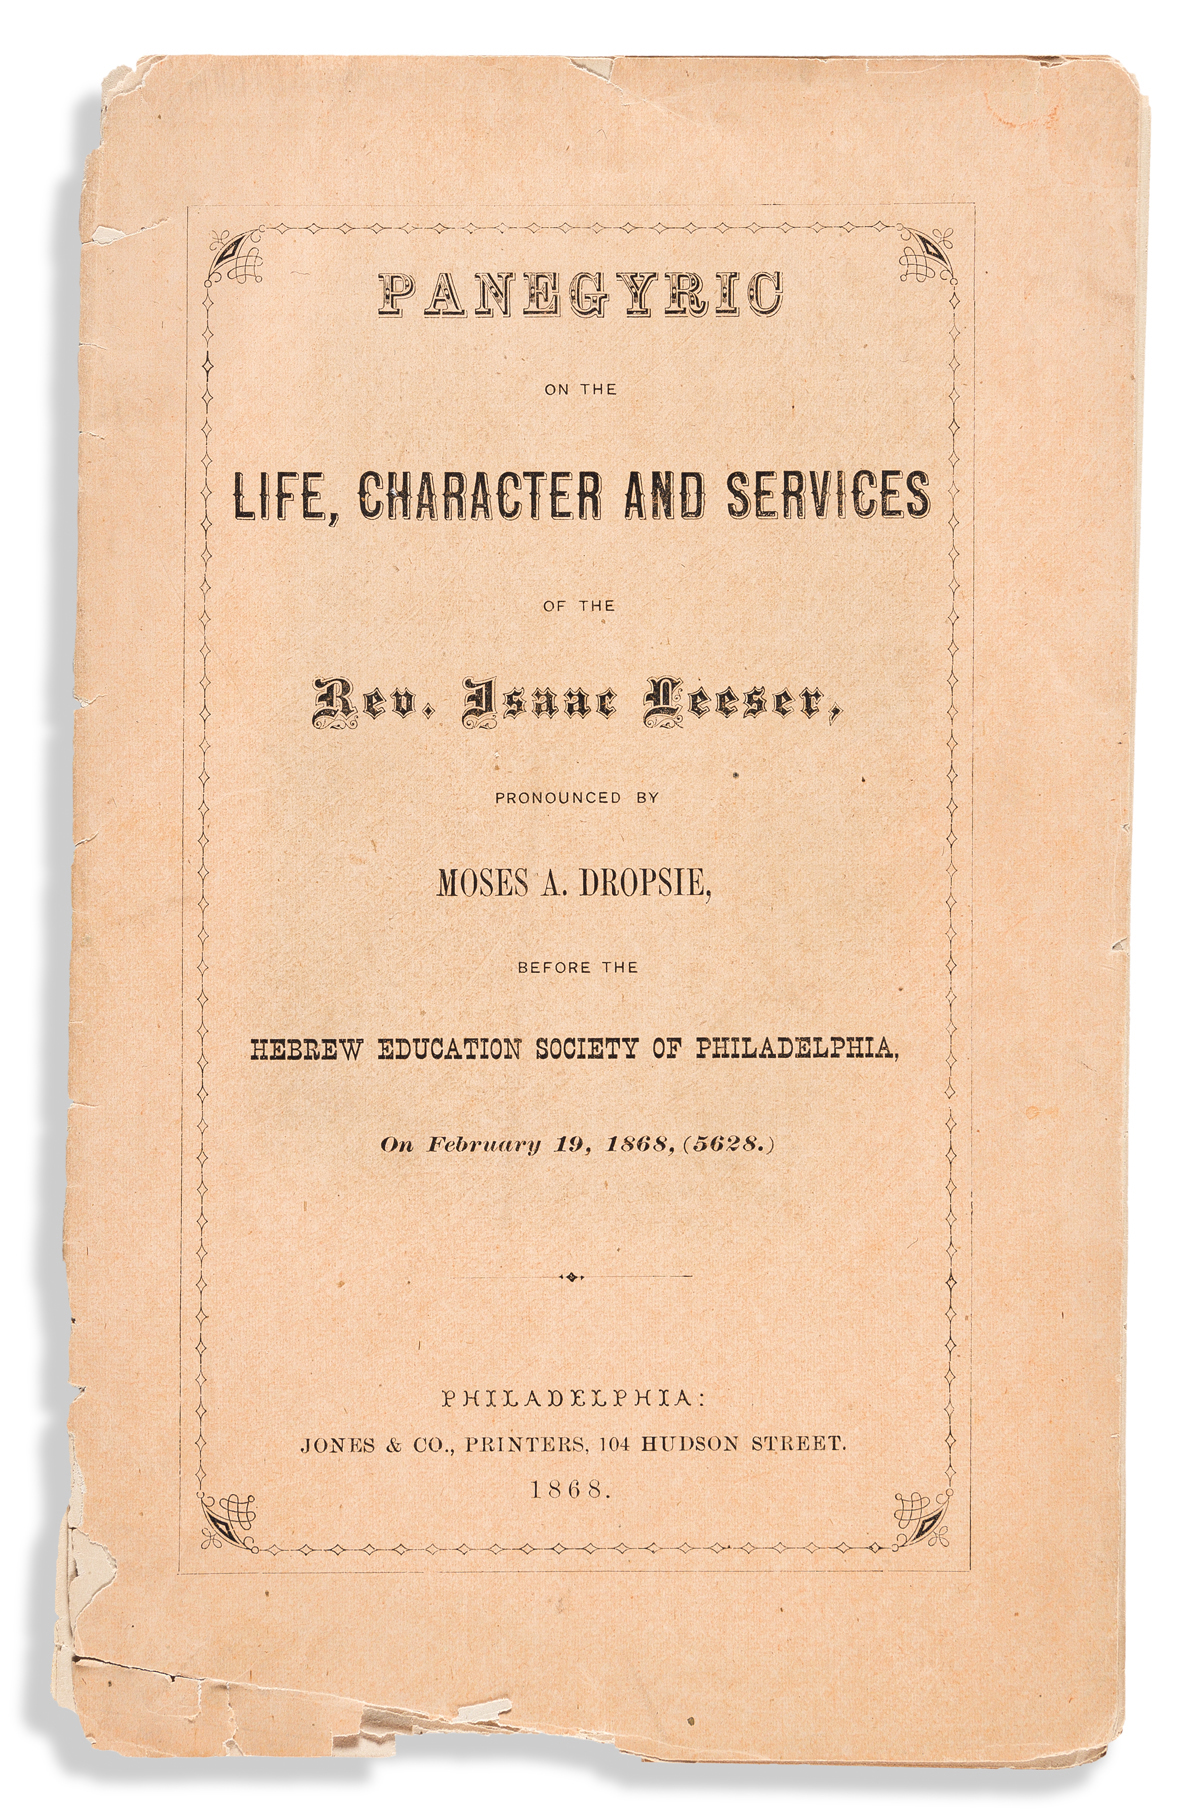 (JUDAICA.) Moses A. Dropsie. Panegyric on the Life, Character and Services of the Rev. Isaac Leeser.